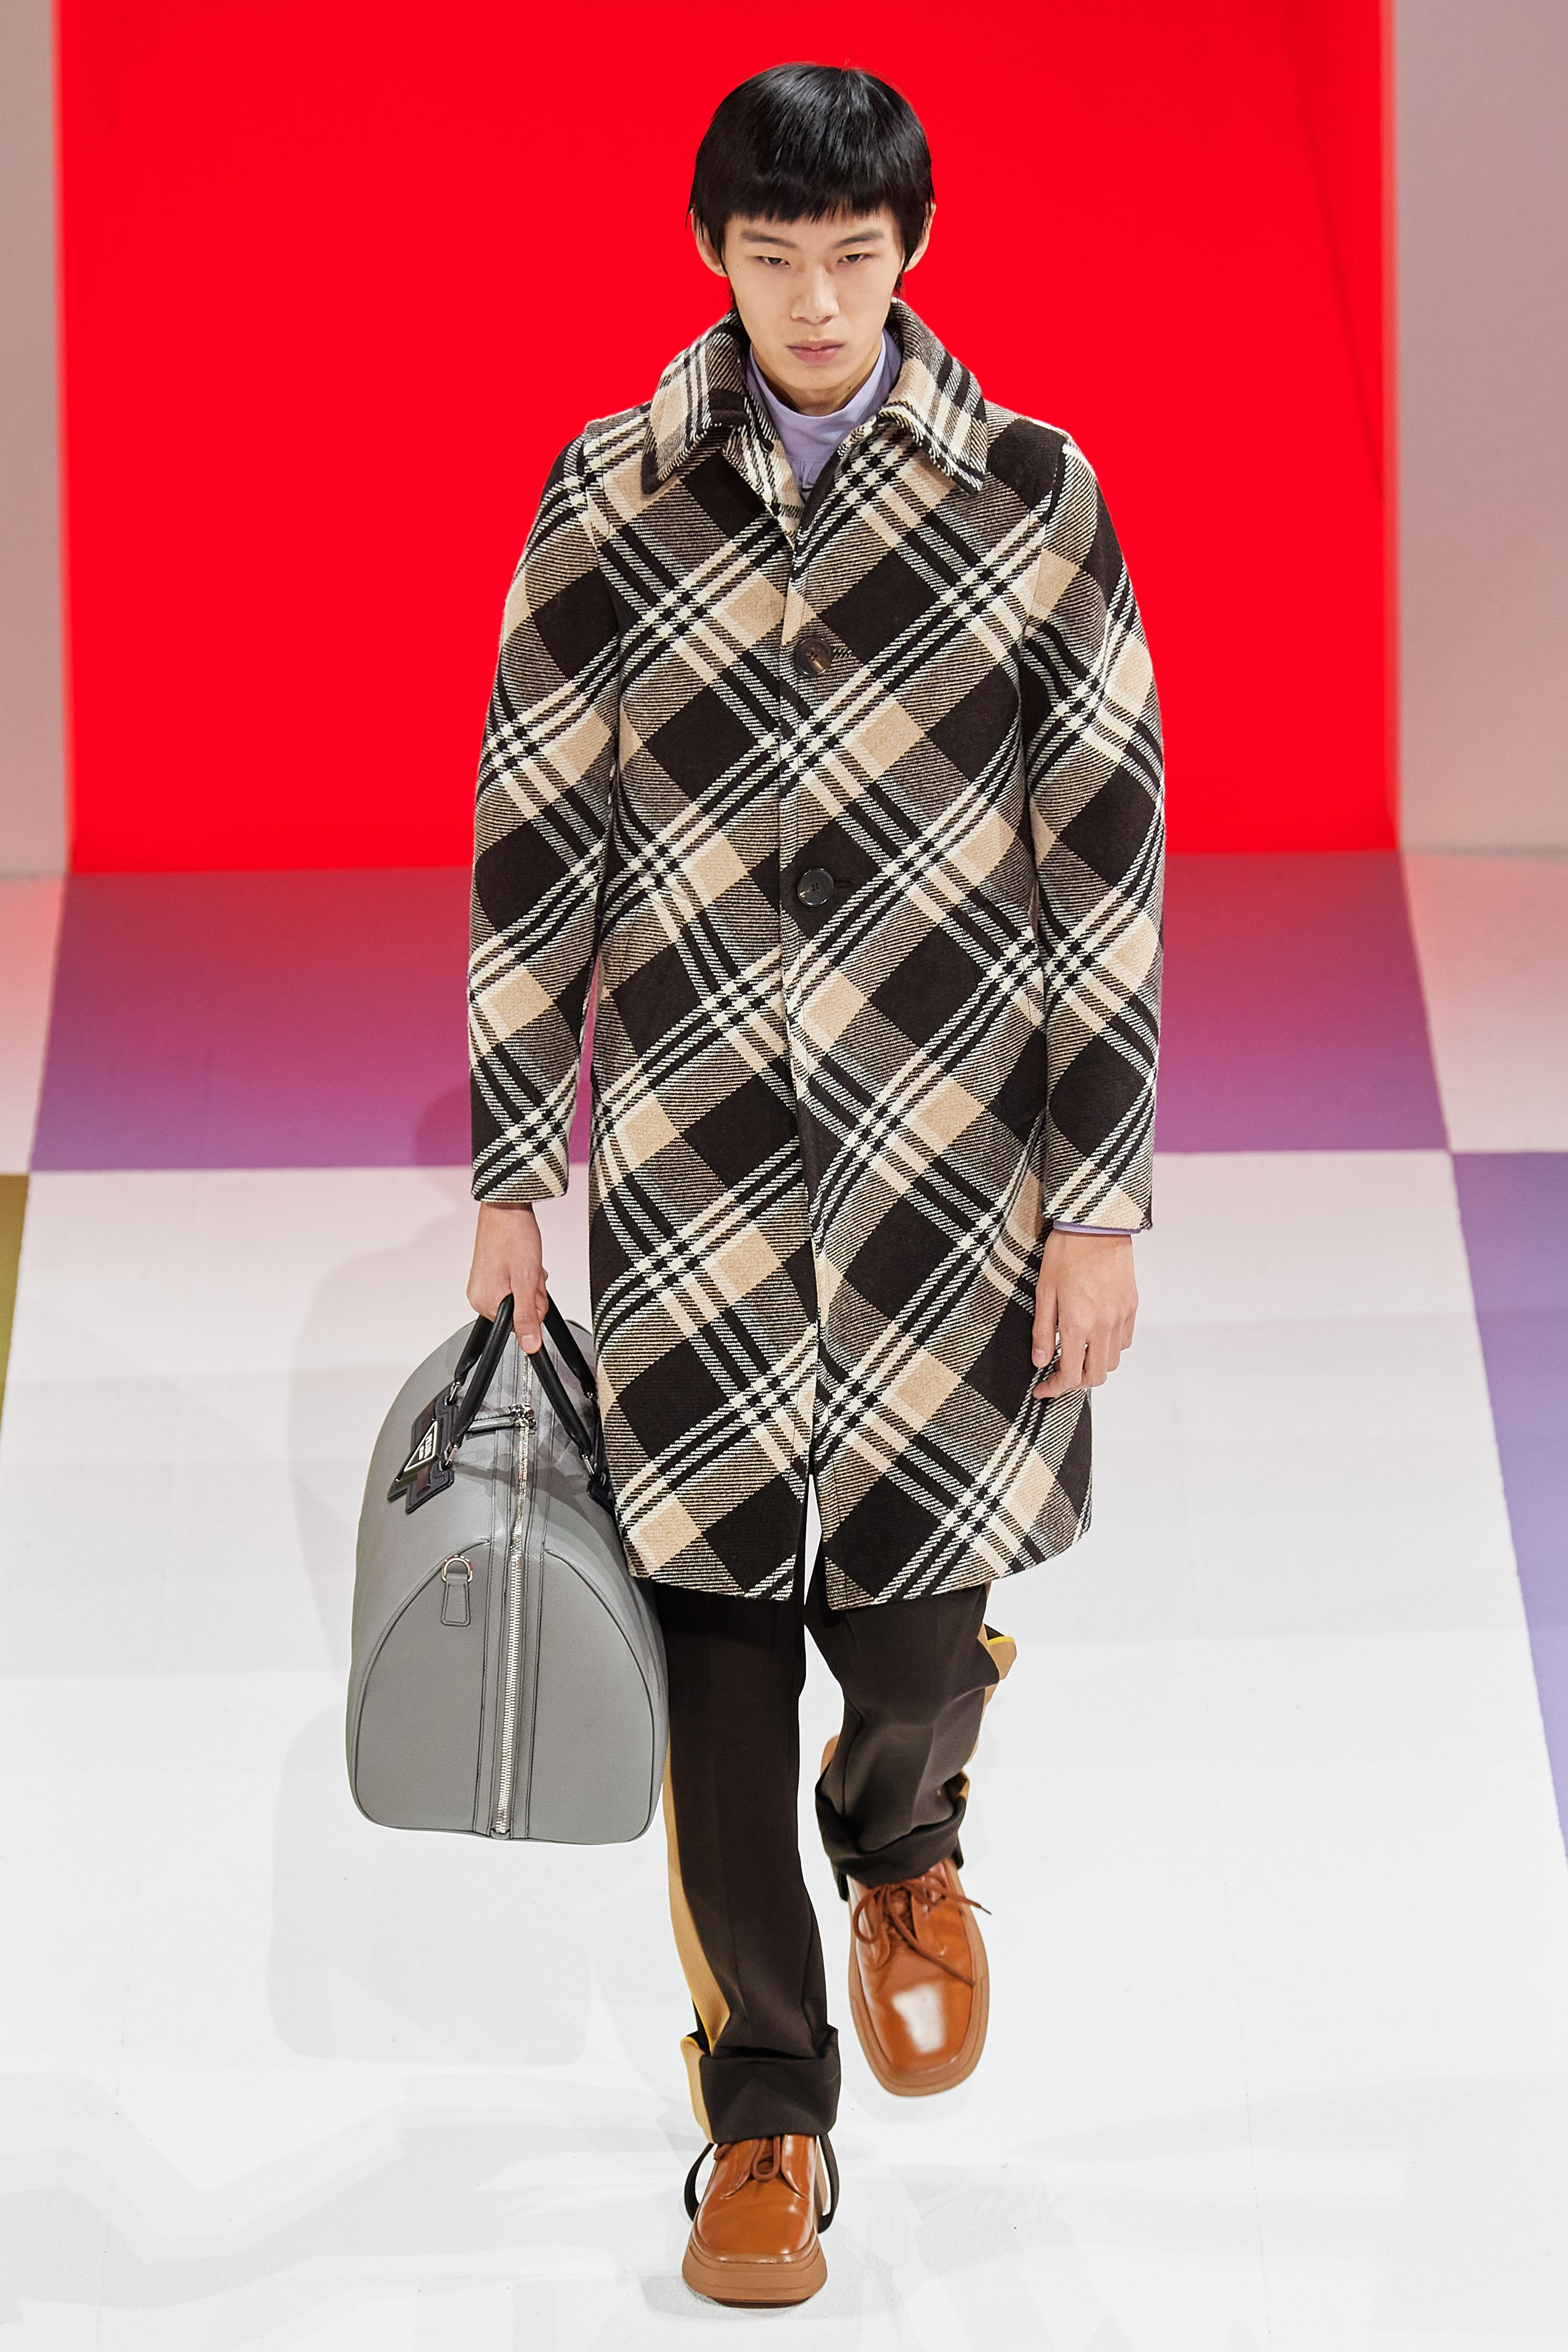 A Look at the Prada Fall 2020 Menswear Collection prada fall 2020 A Look at the Prada Fall 2020 Menswear Collection FIO2285